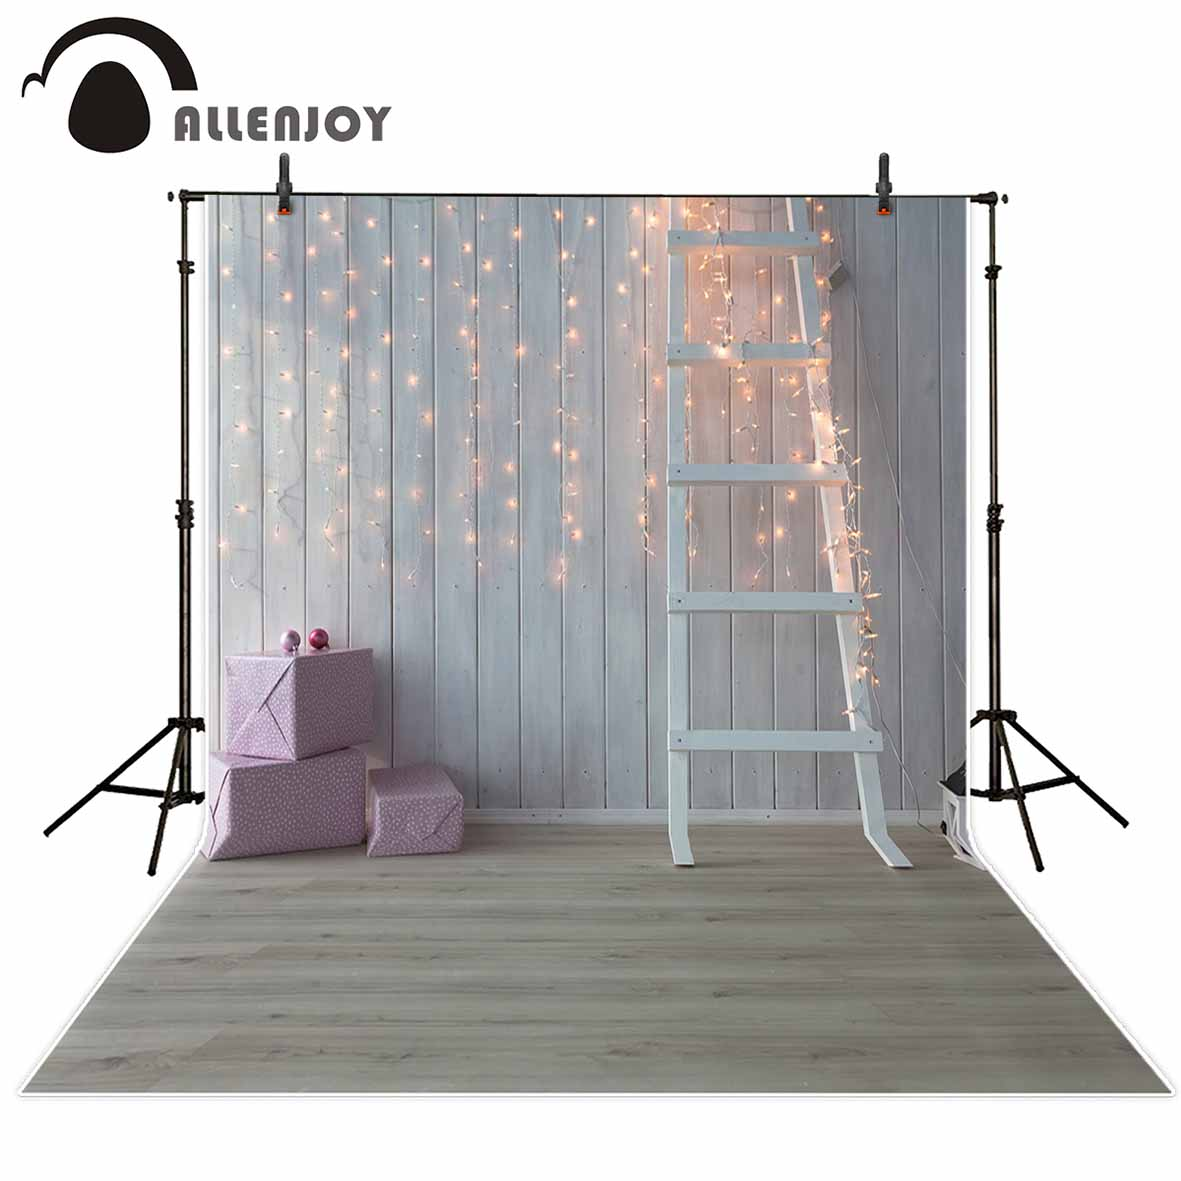 Allenjoy photography backdrops Wooden background small bulbs ladder gifts for a photo shoot for kids Photophone photo backdrops allenjoy photography backdrops pink curtains stripes birthday background customize photo booth for a photo shoot vinyl backdrops